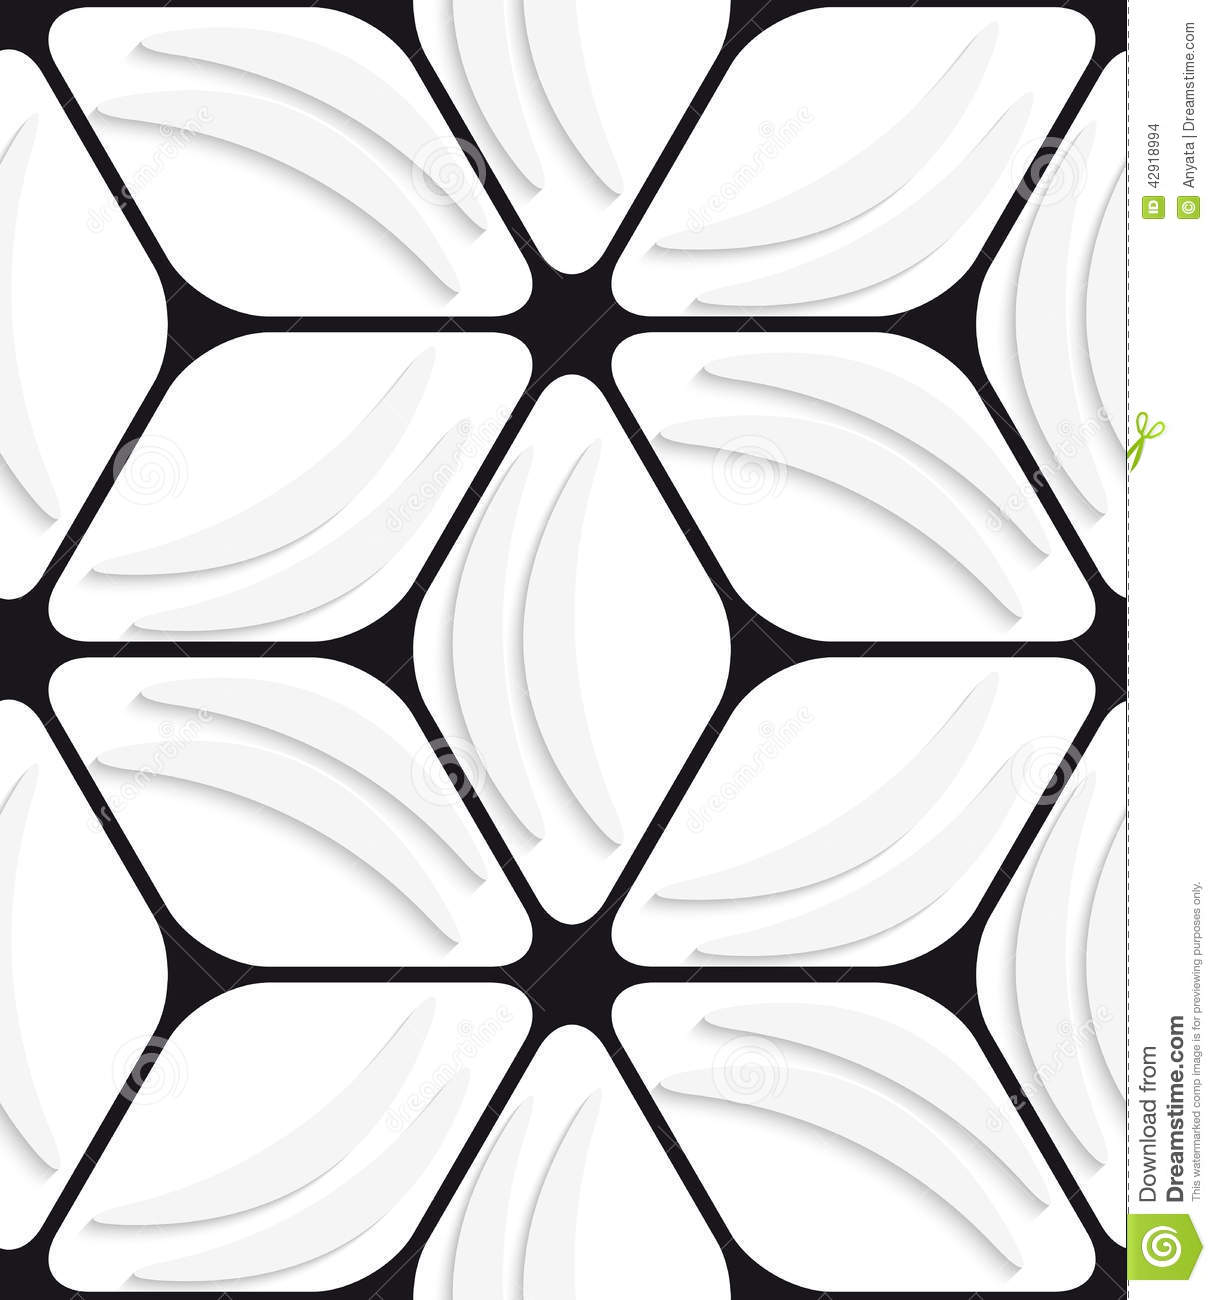 Black abstract shapes pictures to pin on pinterest pinsdaddy for Black and white shapes